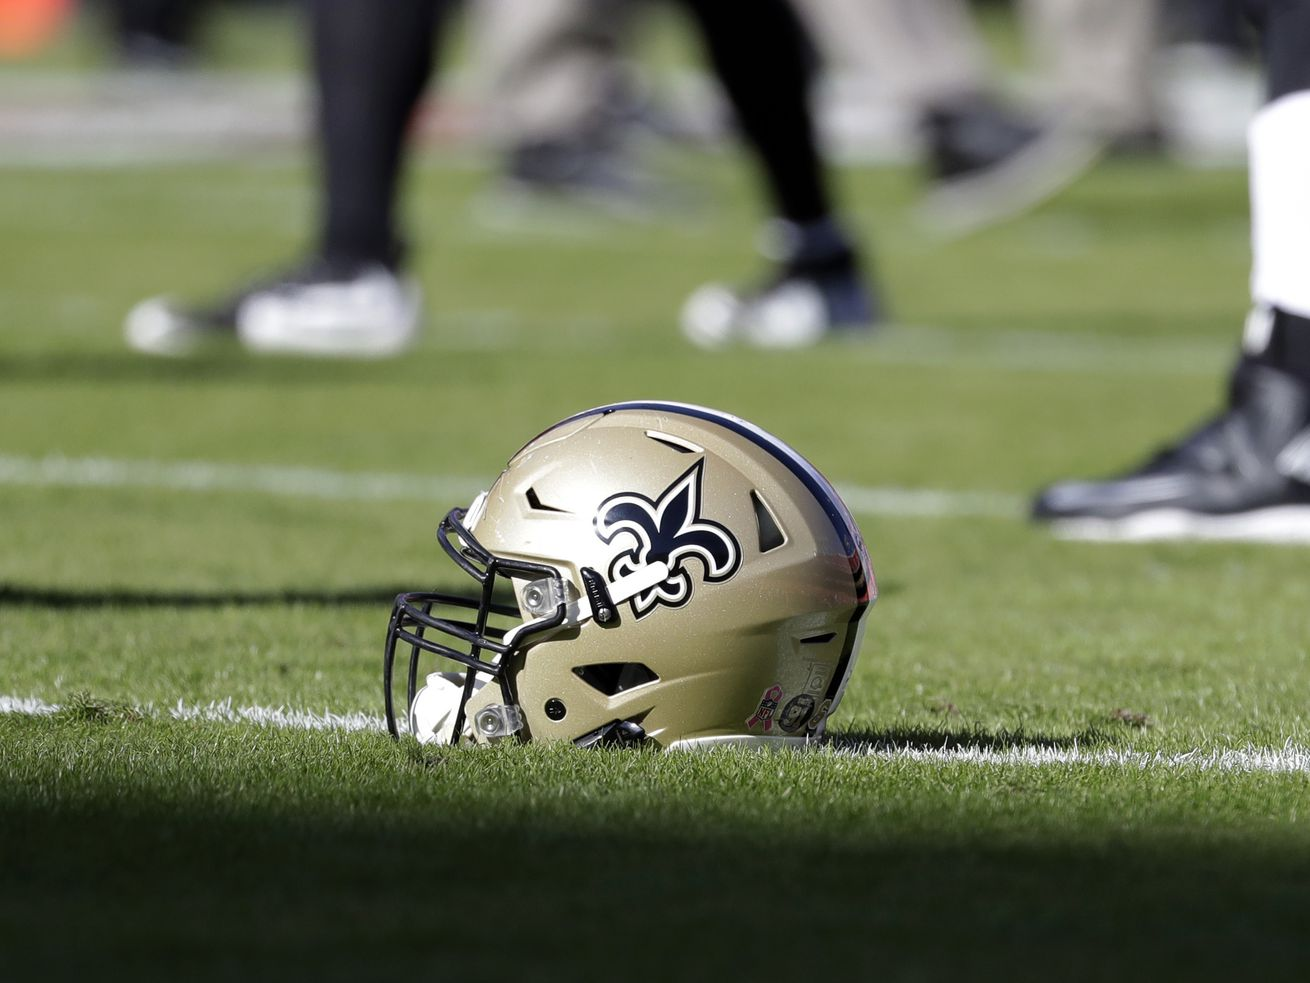 Judge orders open hearing on sex abuse emails between New Orleans Saints, Catholic officials